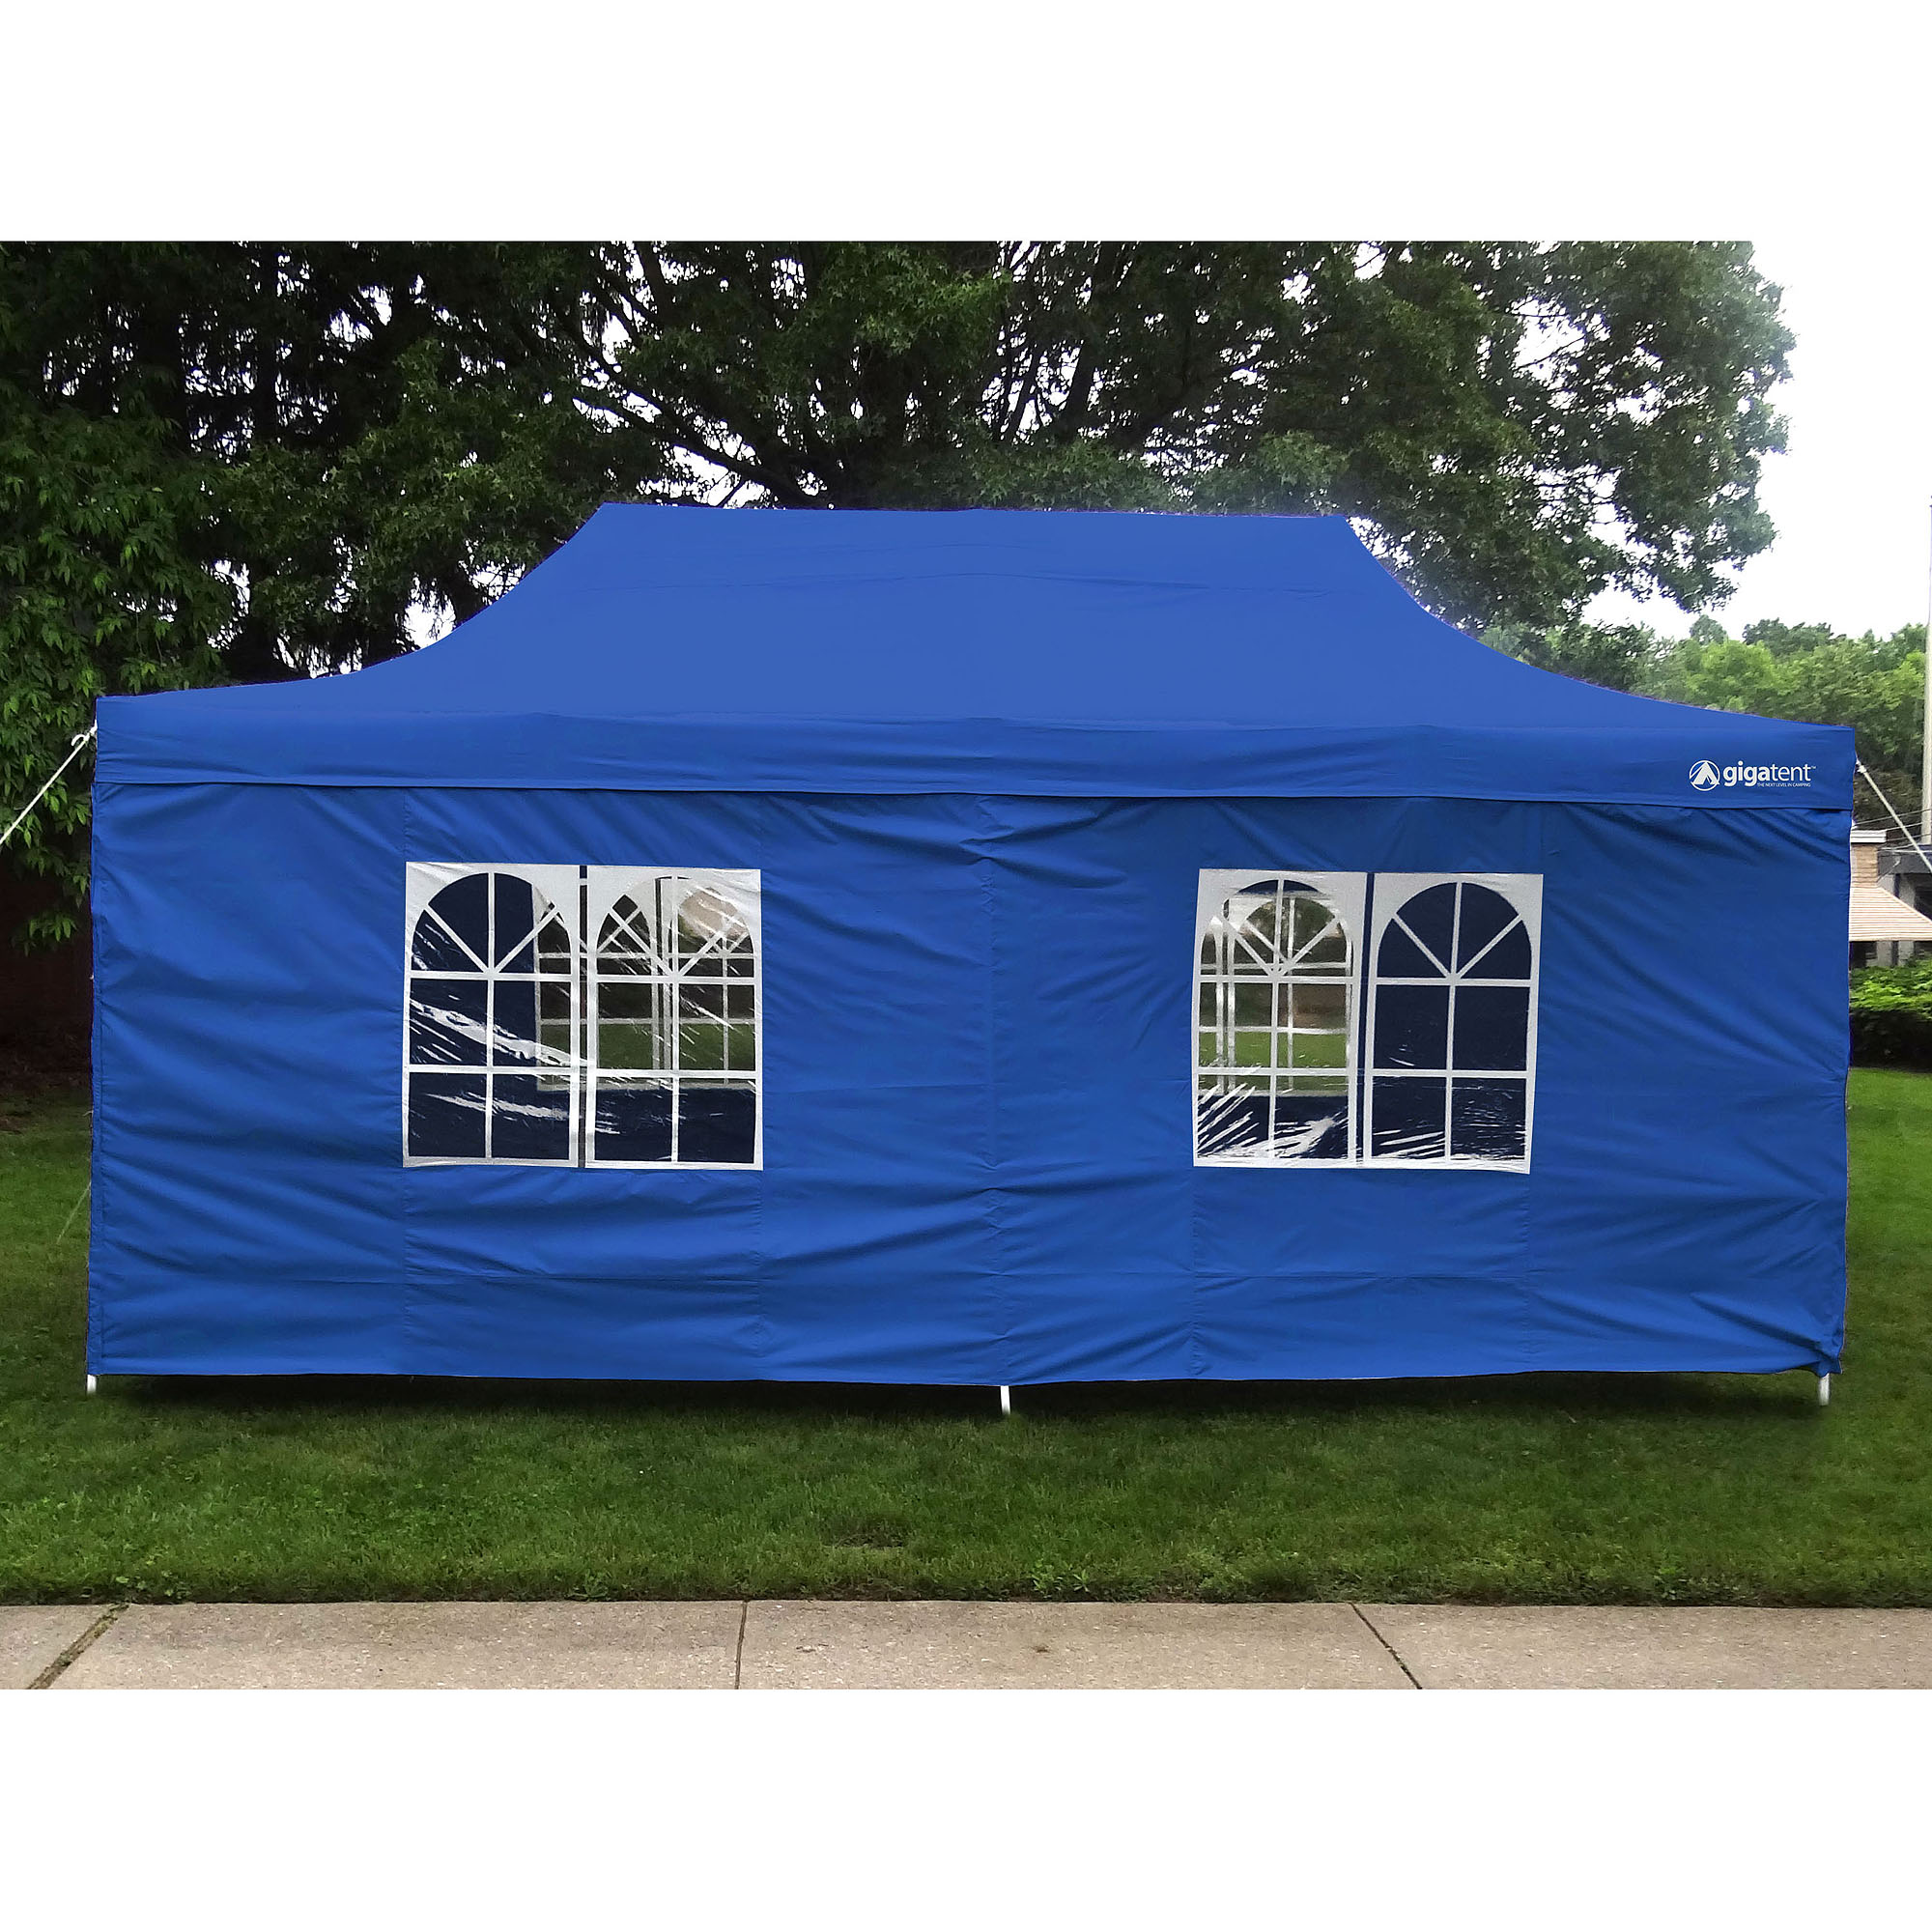 GigaTent The Party Tent Deluxe 10' x 20' Canopy, Blue